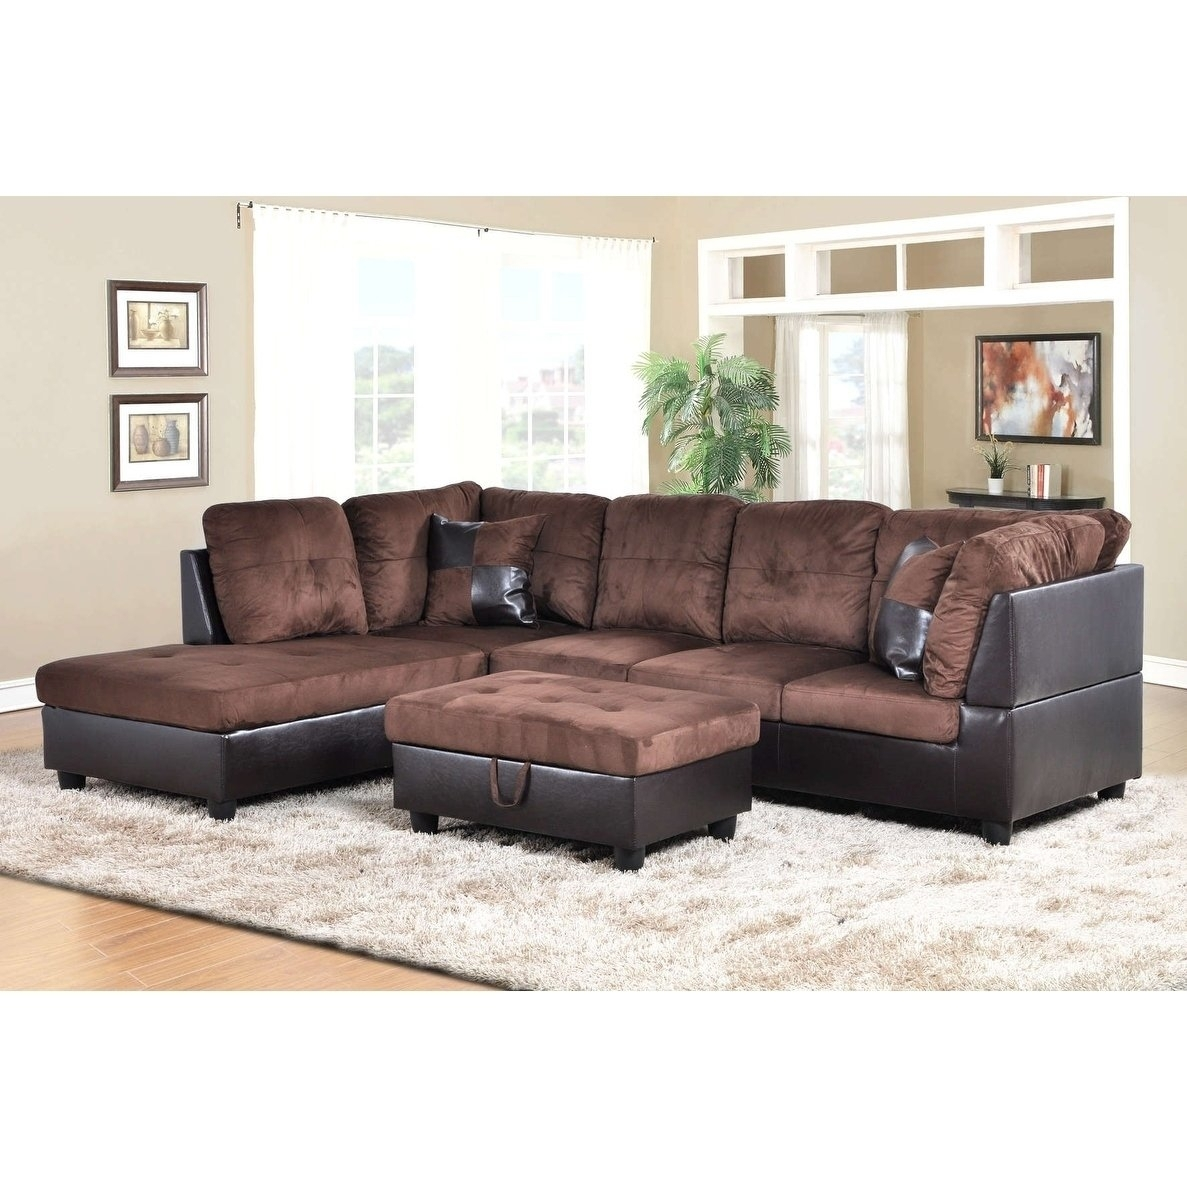 Shop Golden Coast Furniture 3 Piece Microfiber Leather Sofa Throughout Karen 3 Piece Sectionals (Image 19 of 25)